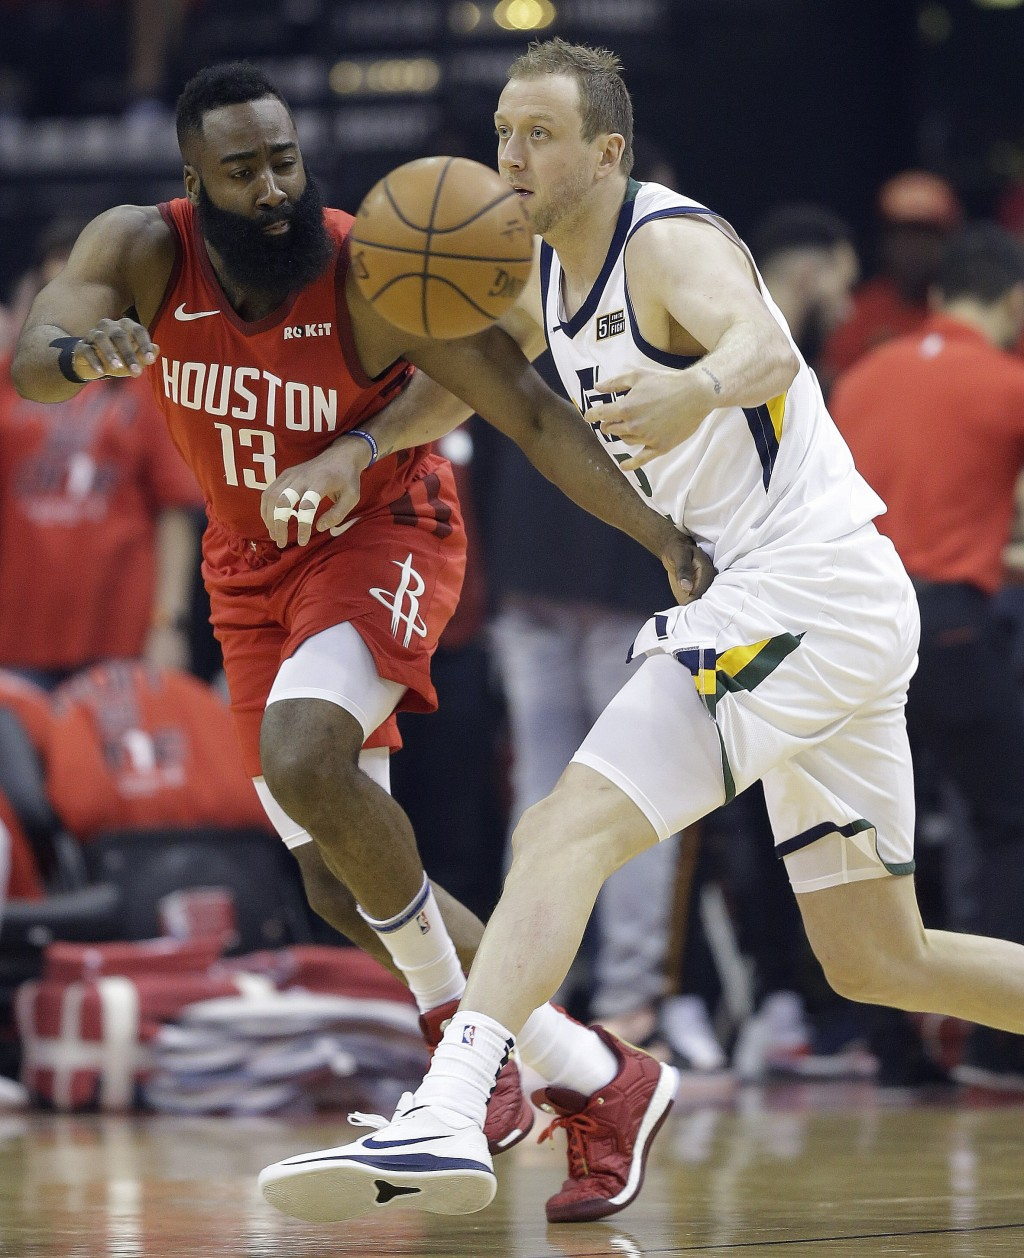 Utah Jazz forward Joe Ingles, right, passes the ball as Houston Rockets guard James Harden defends during the first half of Game 1 of an NBA basketbal